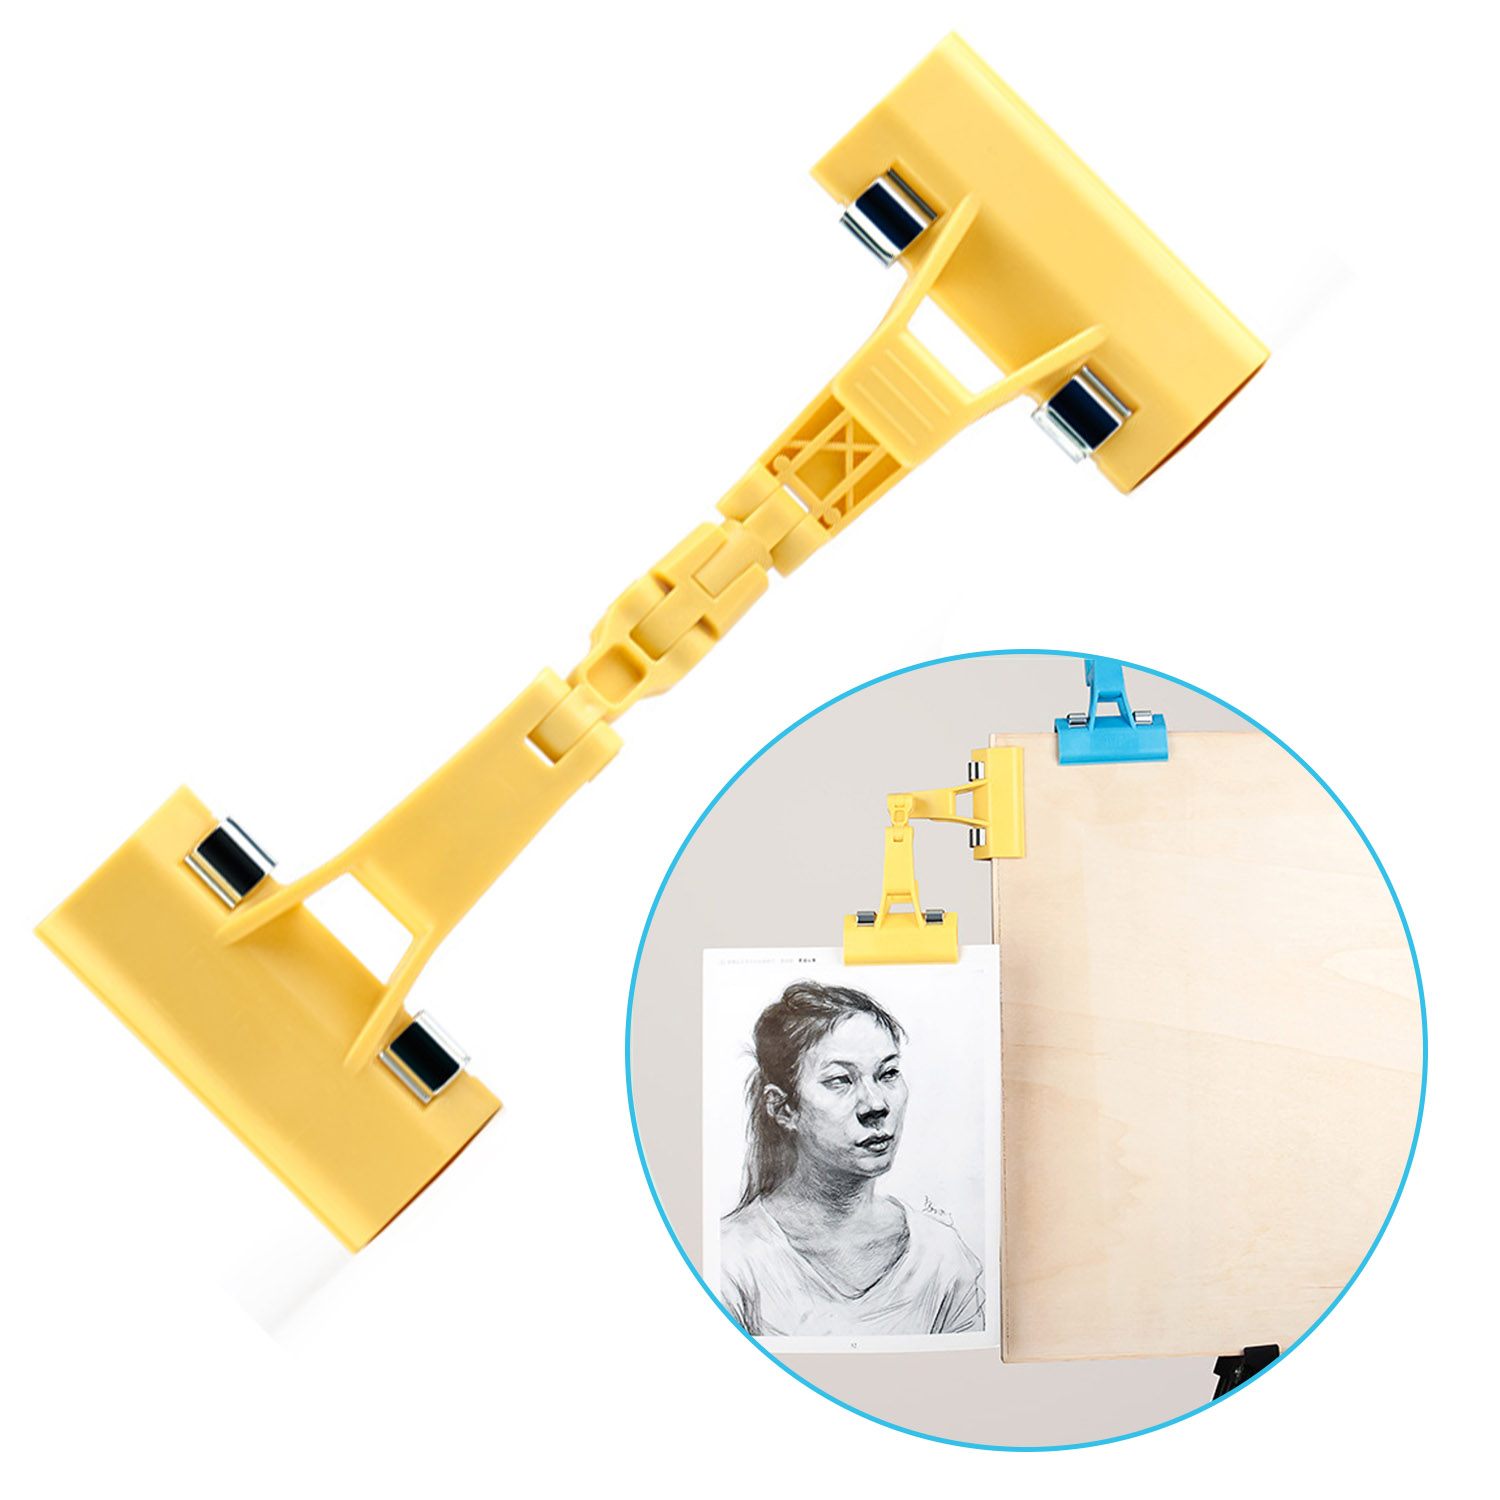 Double Head Rotatable Picture Copy Holder Painting Clip Clamp for Artist Easels Sketch Drawing Boards Random ColorDouble Head Rotatable Picture Copy Holder Painting Clip Clamp for Artist Easels Sketch Drawing Boards Random Color